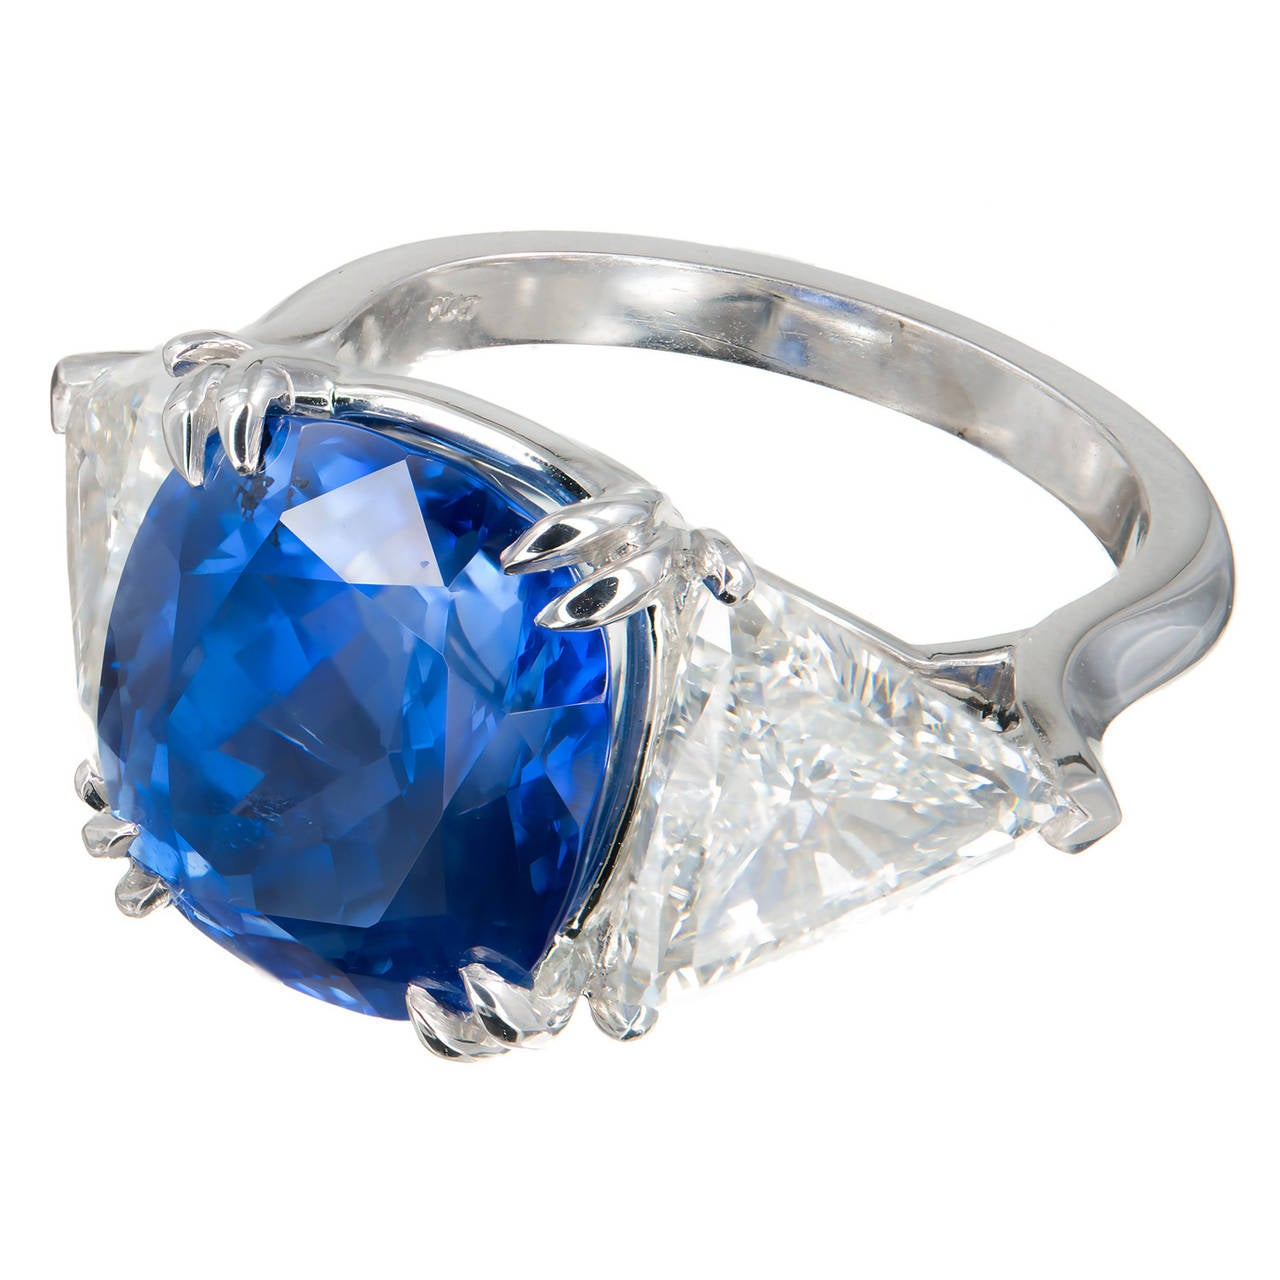 is gemstone hammered the beautiful birthstone gold large sapphire ring diamonds for september what